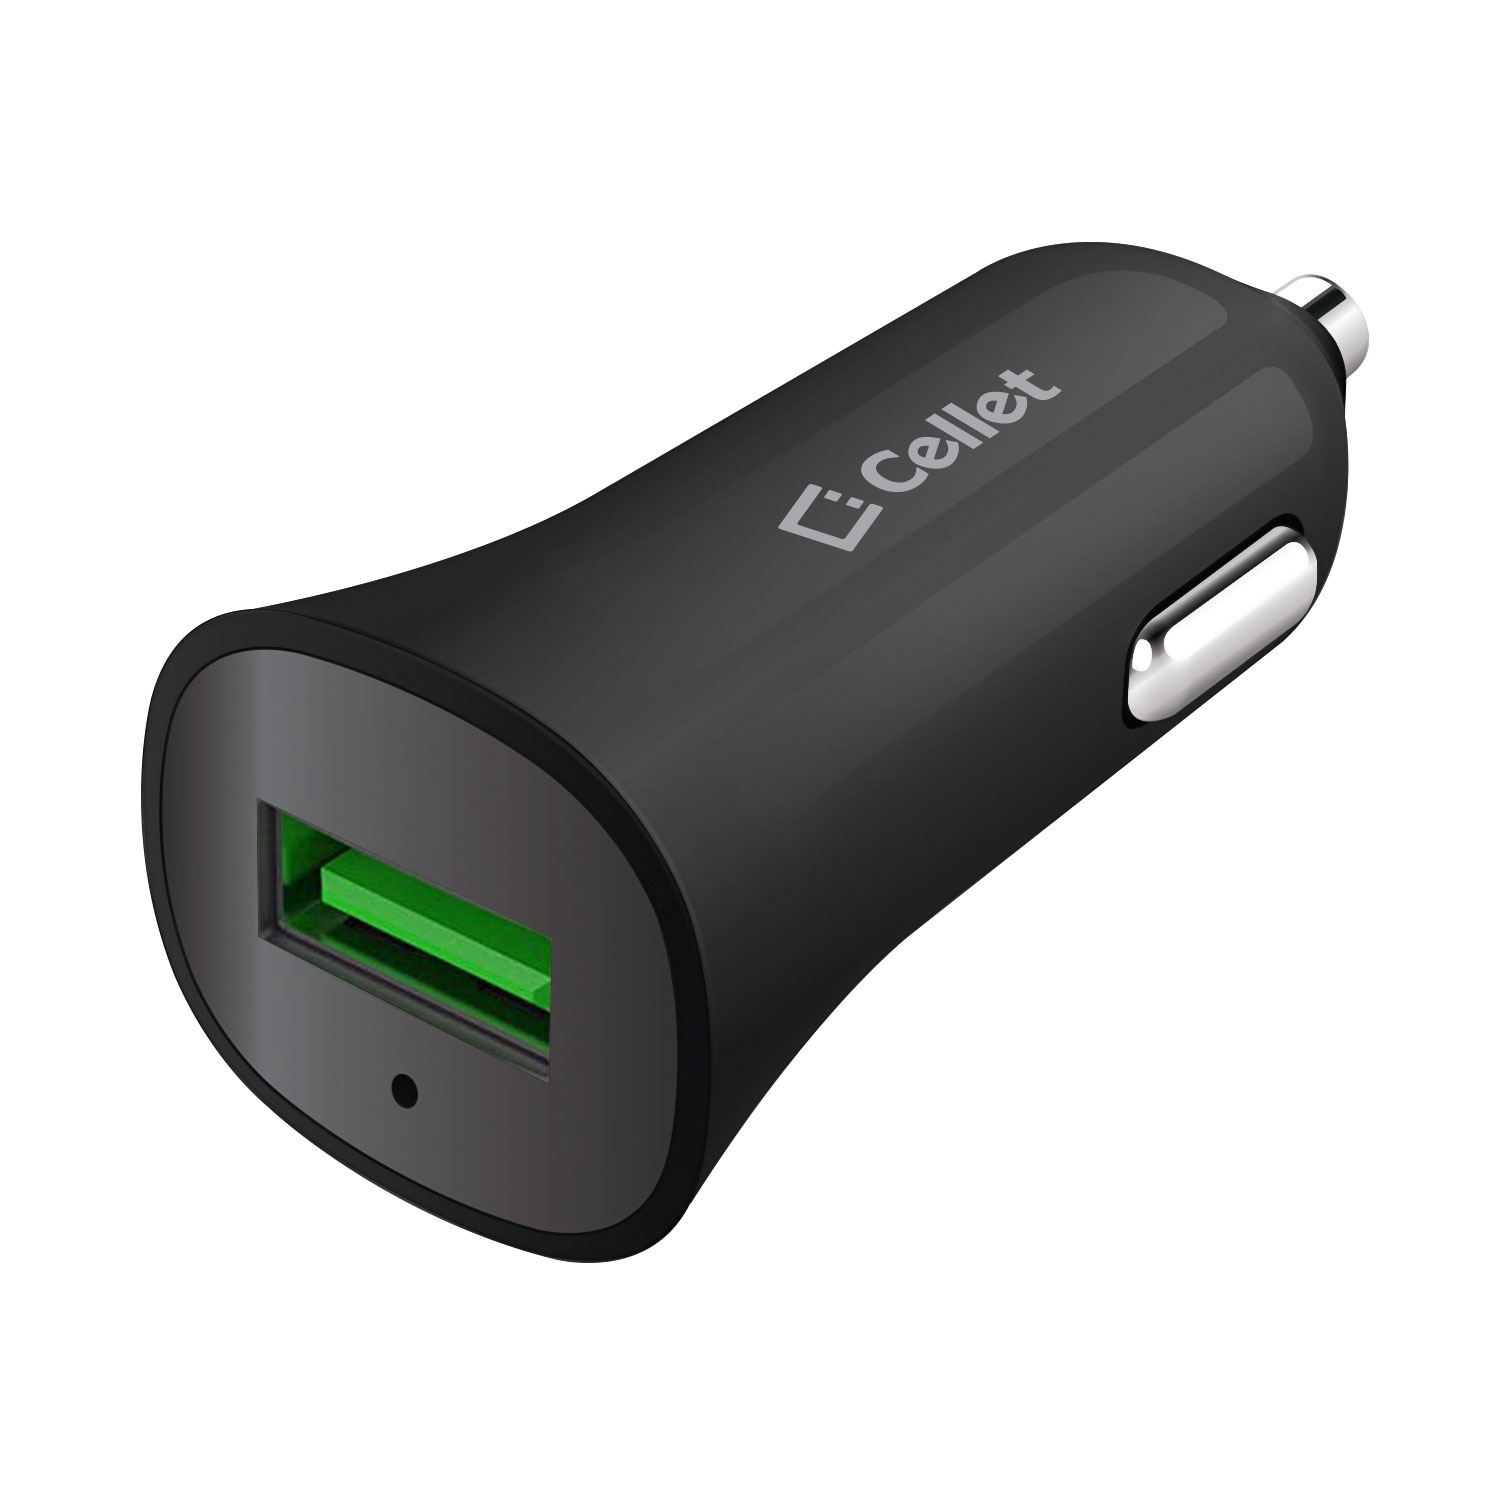 LG Esteem Car Charger Quick Charge 3.0 Black 3.3ft